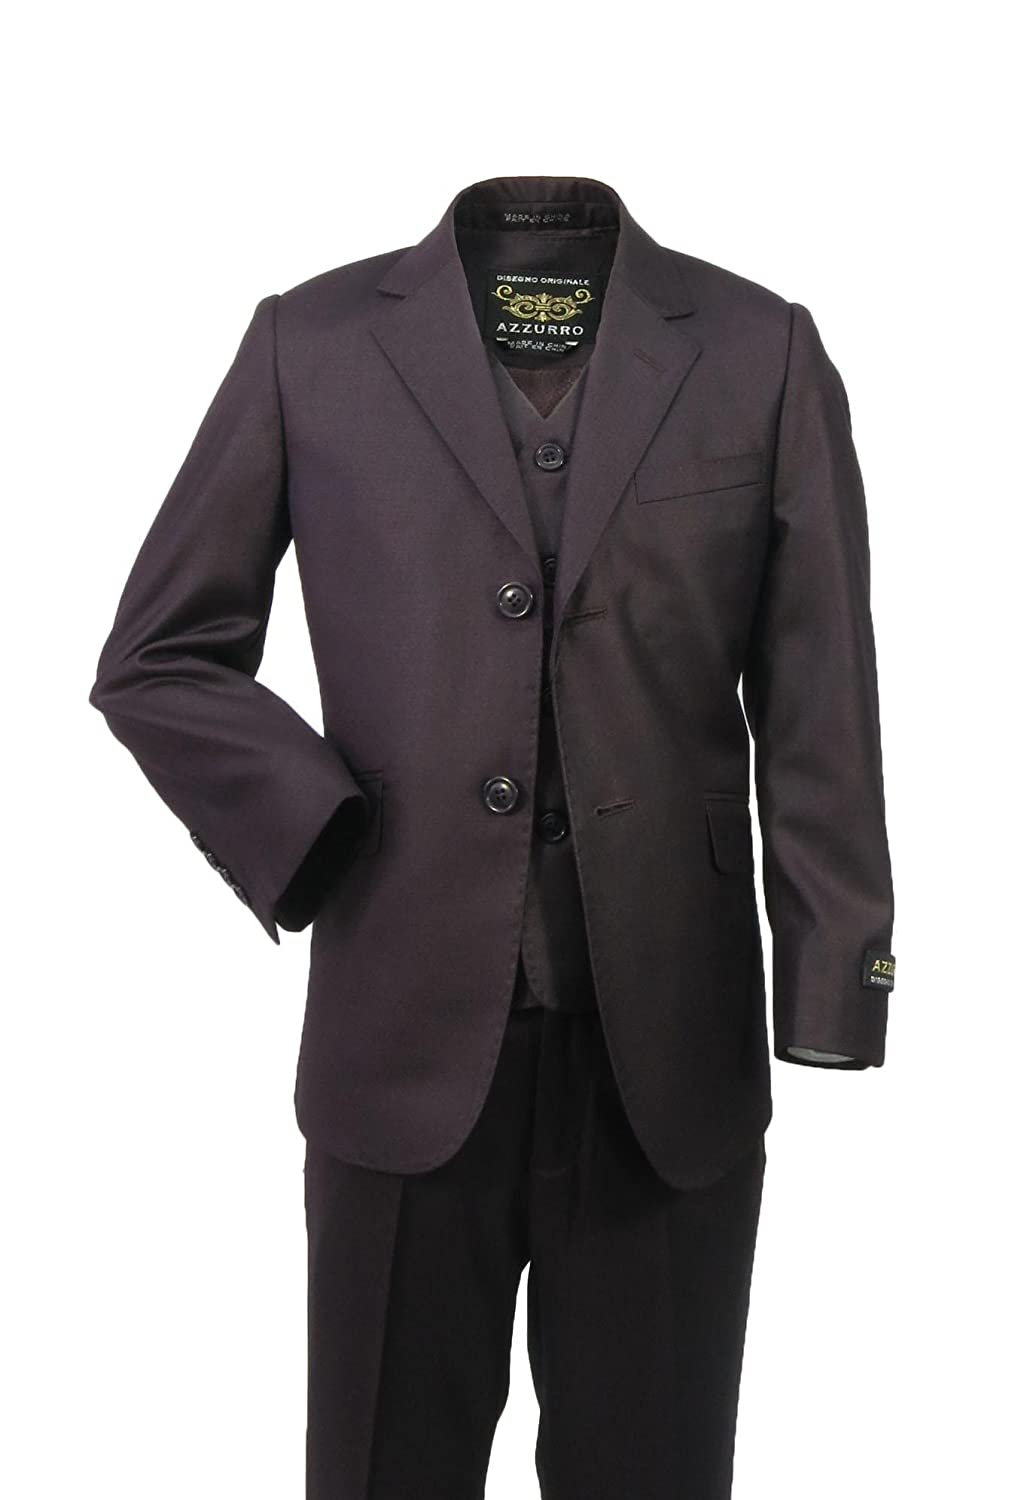 Azzurro Boys Formal 3-Piece Solid Suit with Stitching - Slim Fit 9843